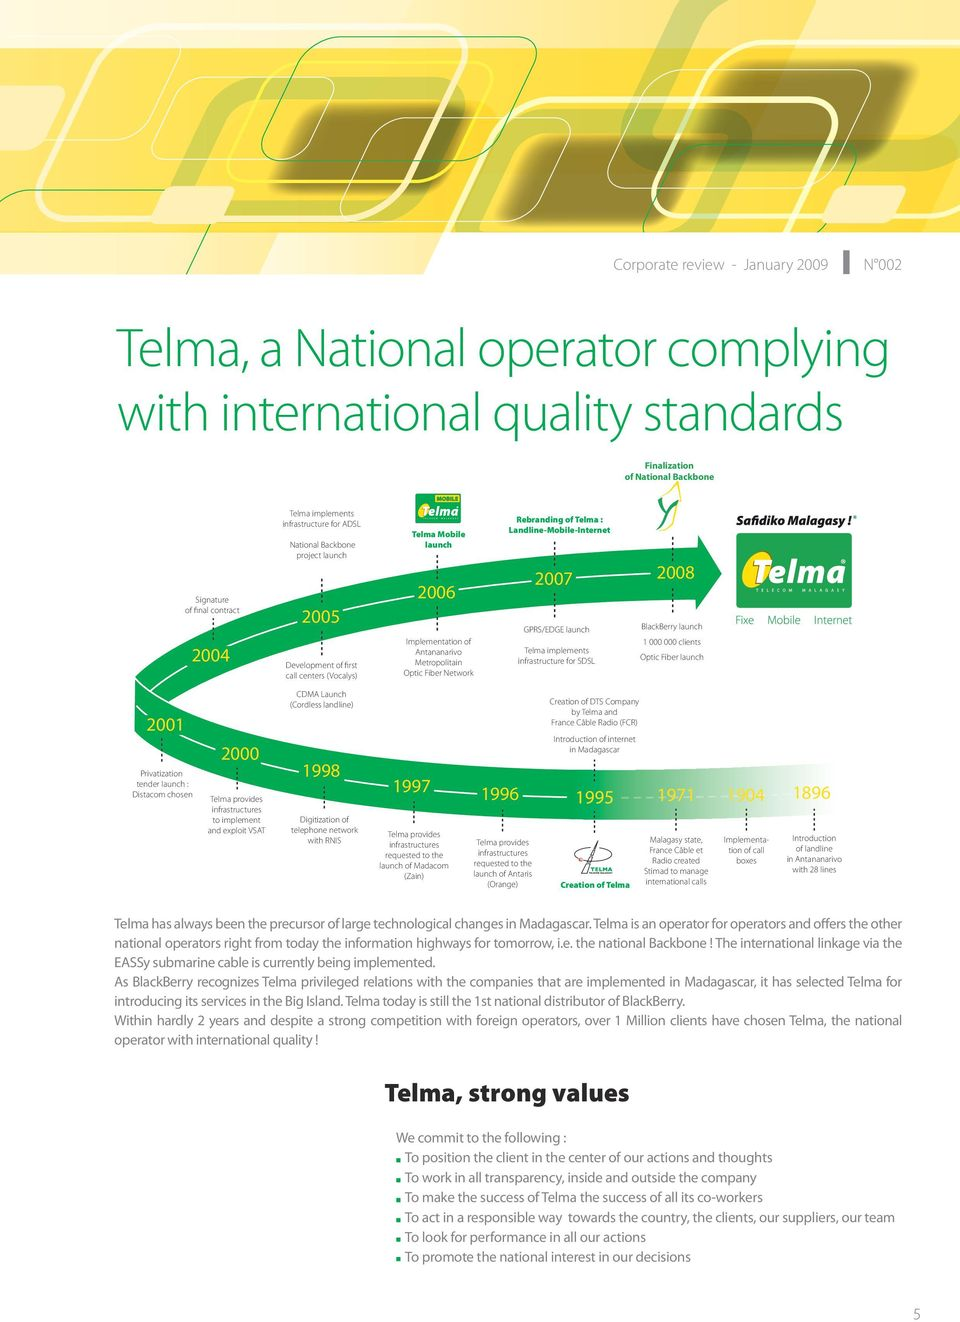 Rebranding of Telma : Landline-Mobile-Internet 2007 GPRS/EDGE launch Telma implements infrastructure for SDSL 2008 BlackBerry launch 1 000 000 clients Optic Fiber launch * 2001 Privatization tender